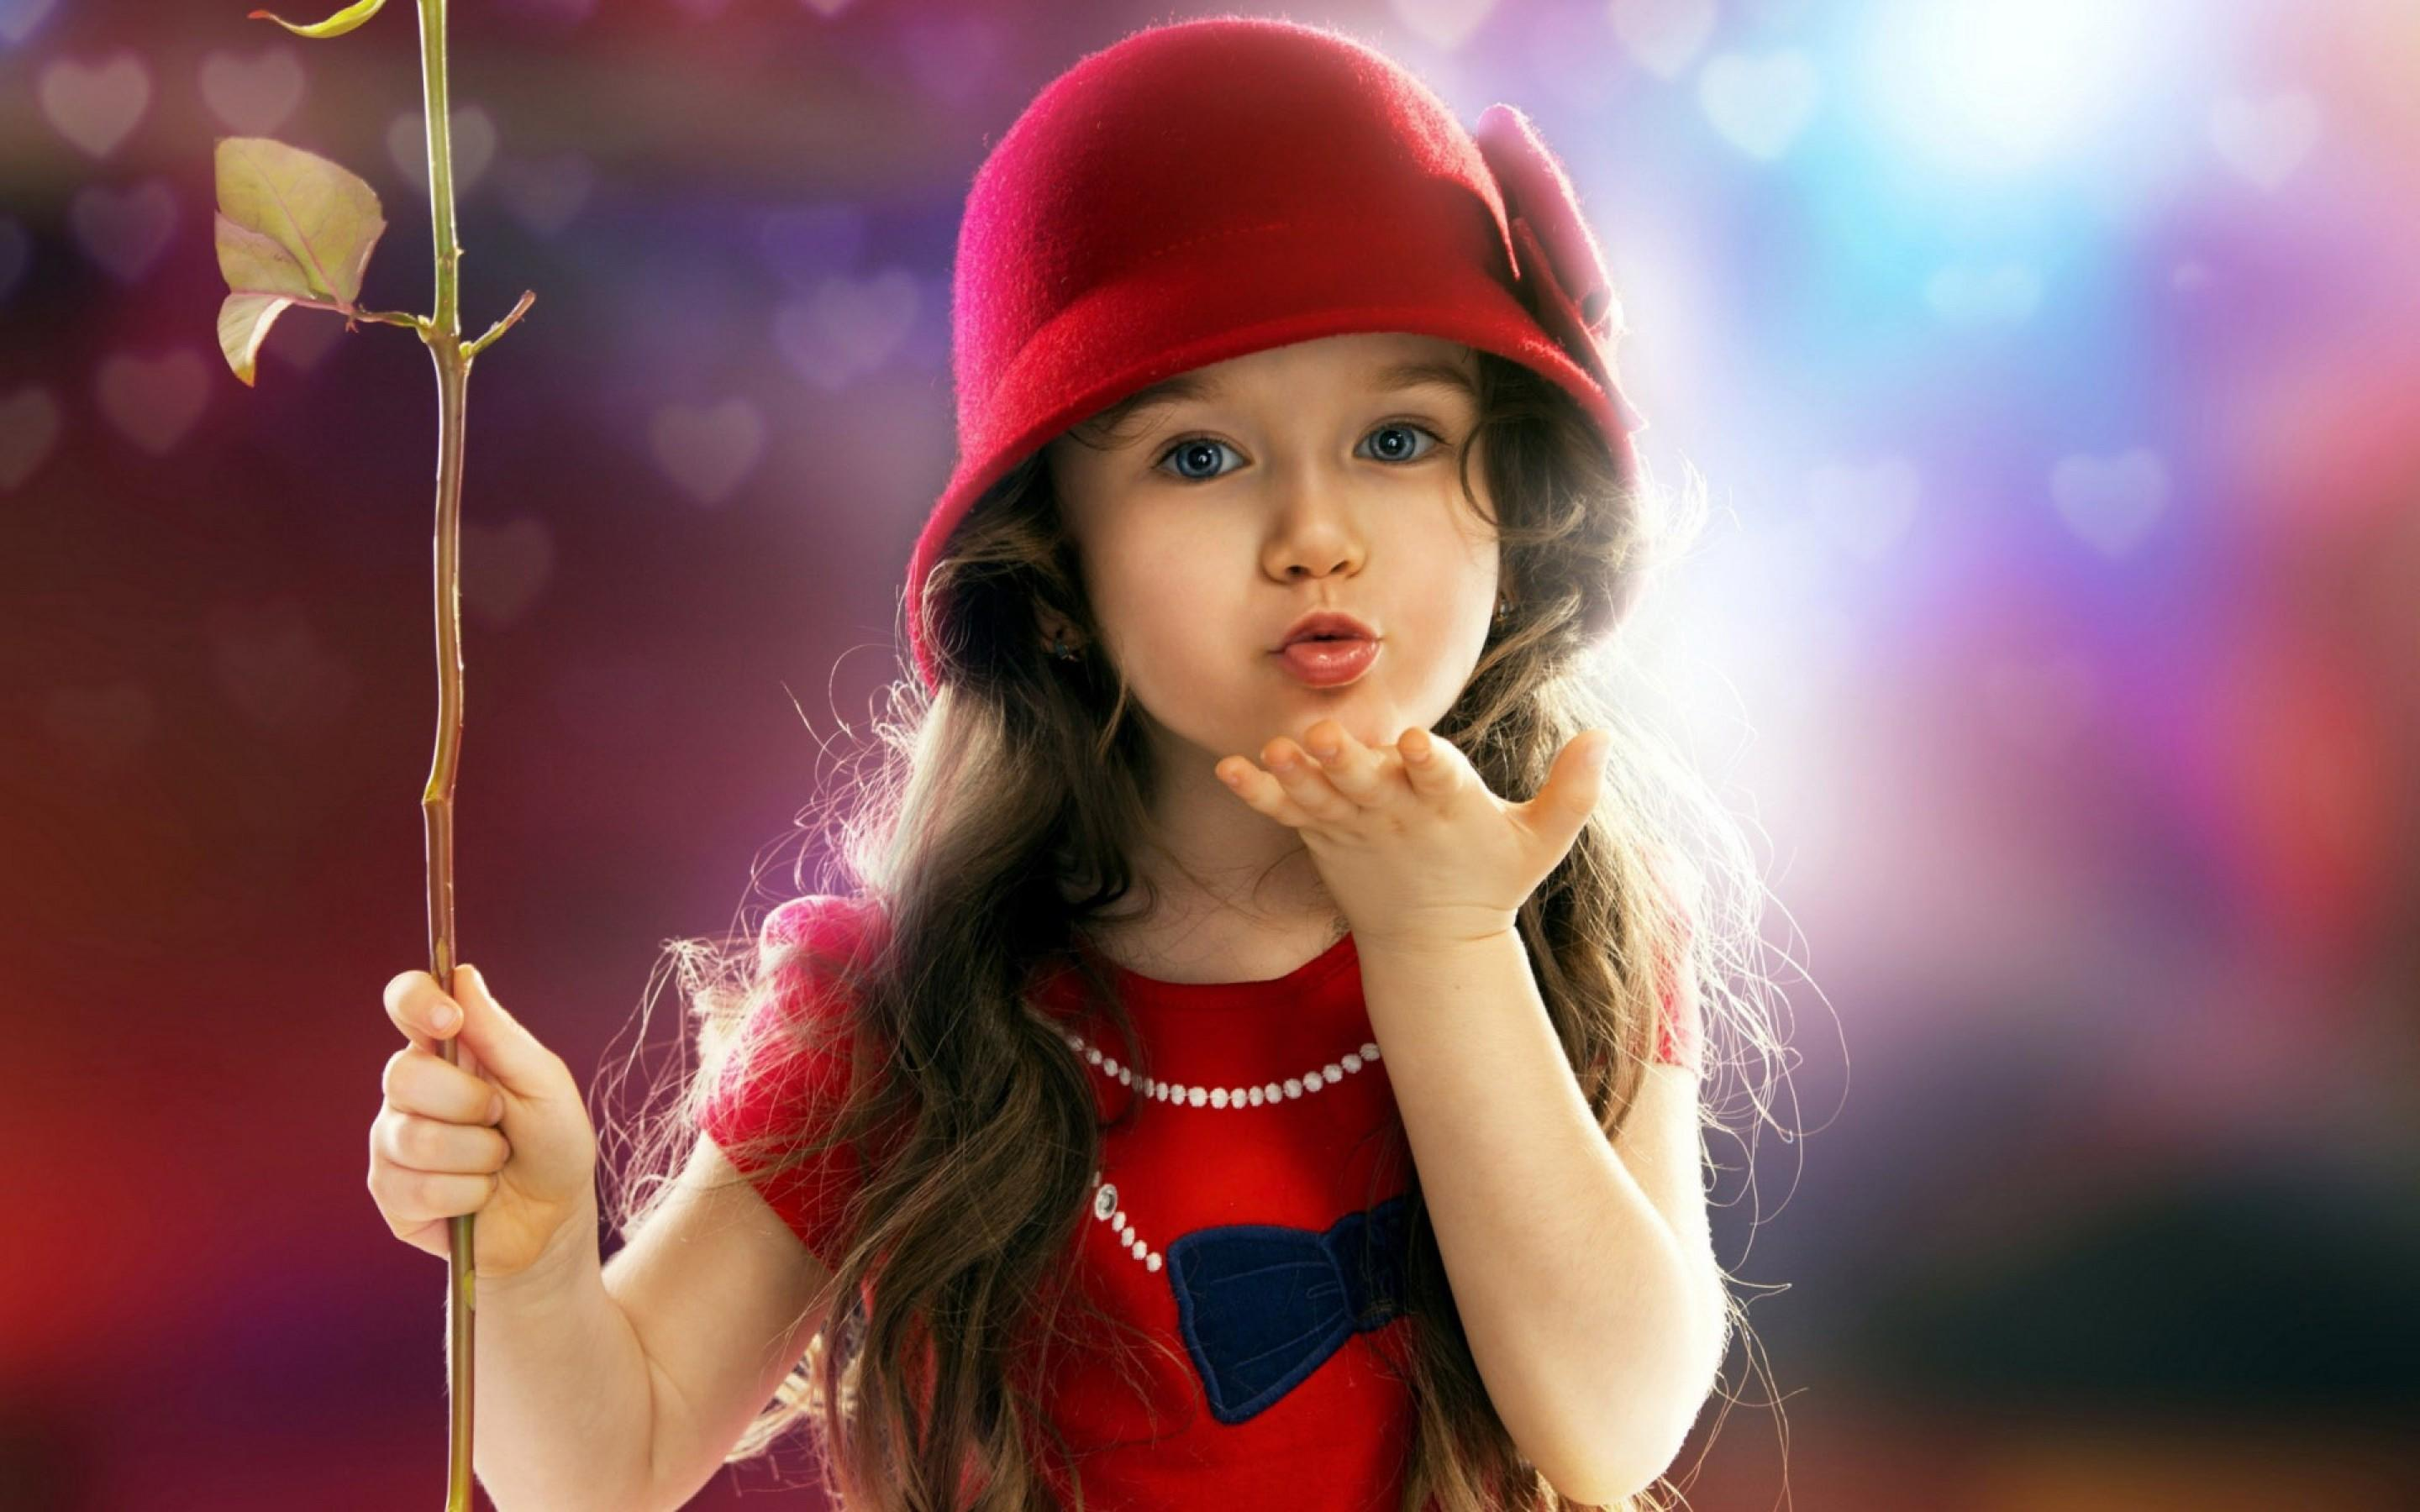 833 child hd wallpapers background images wallpaper abyss hd wallpaper background image id685504 altavistaventures Image collections